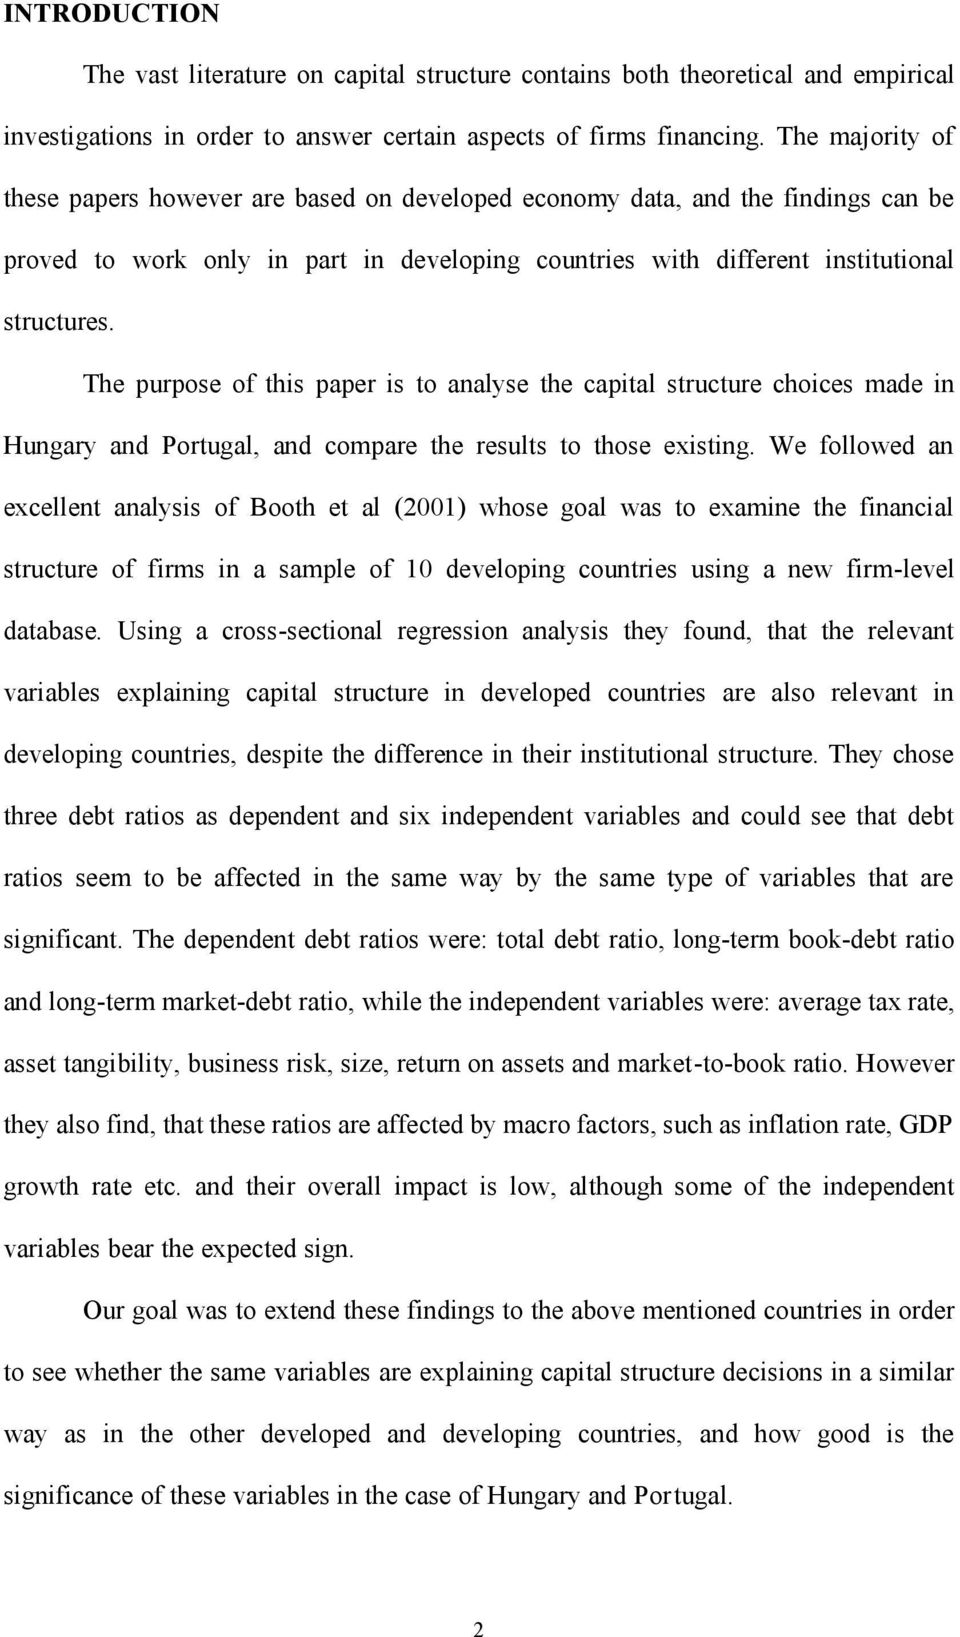 The purpose of this paper is to analyse the capital structure choices made in Hungary and Portugal, and compare the results to those existing.